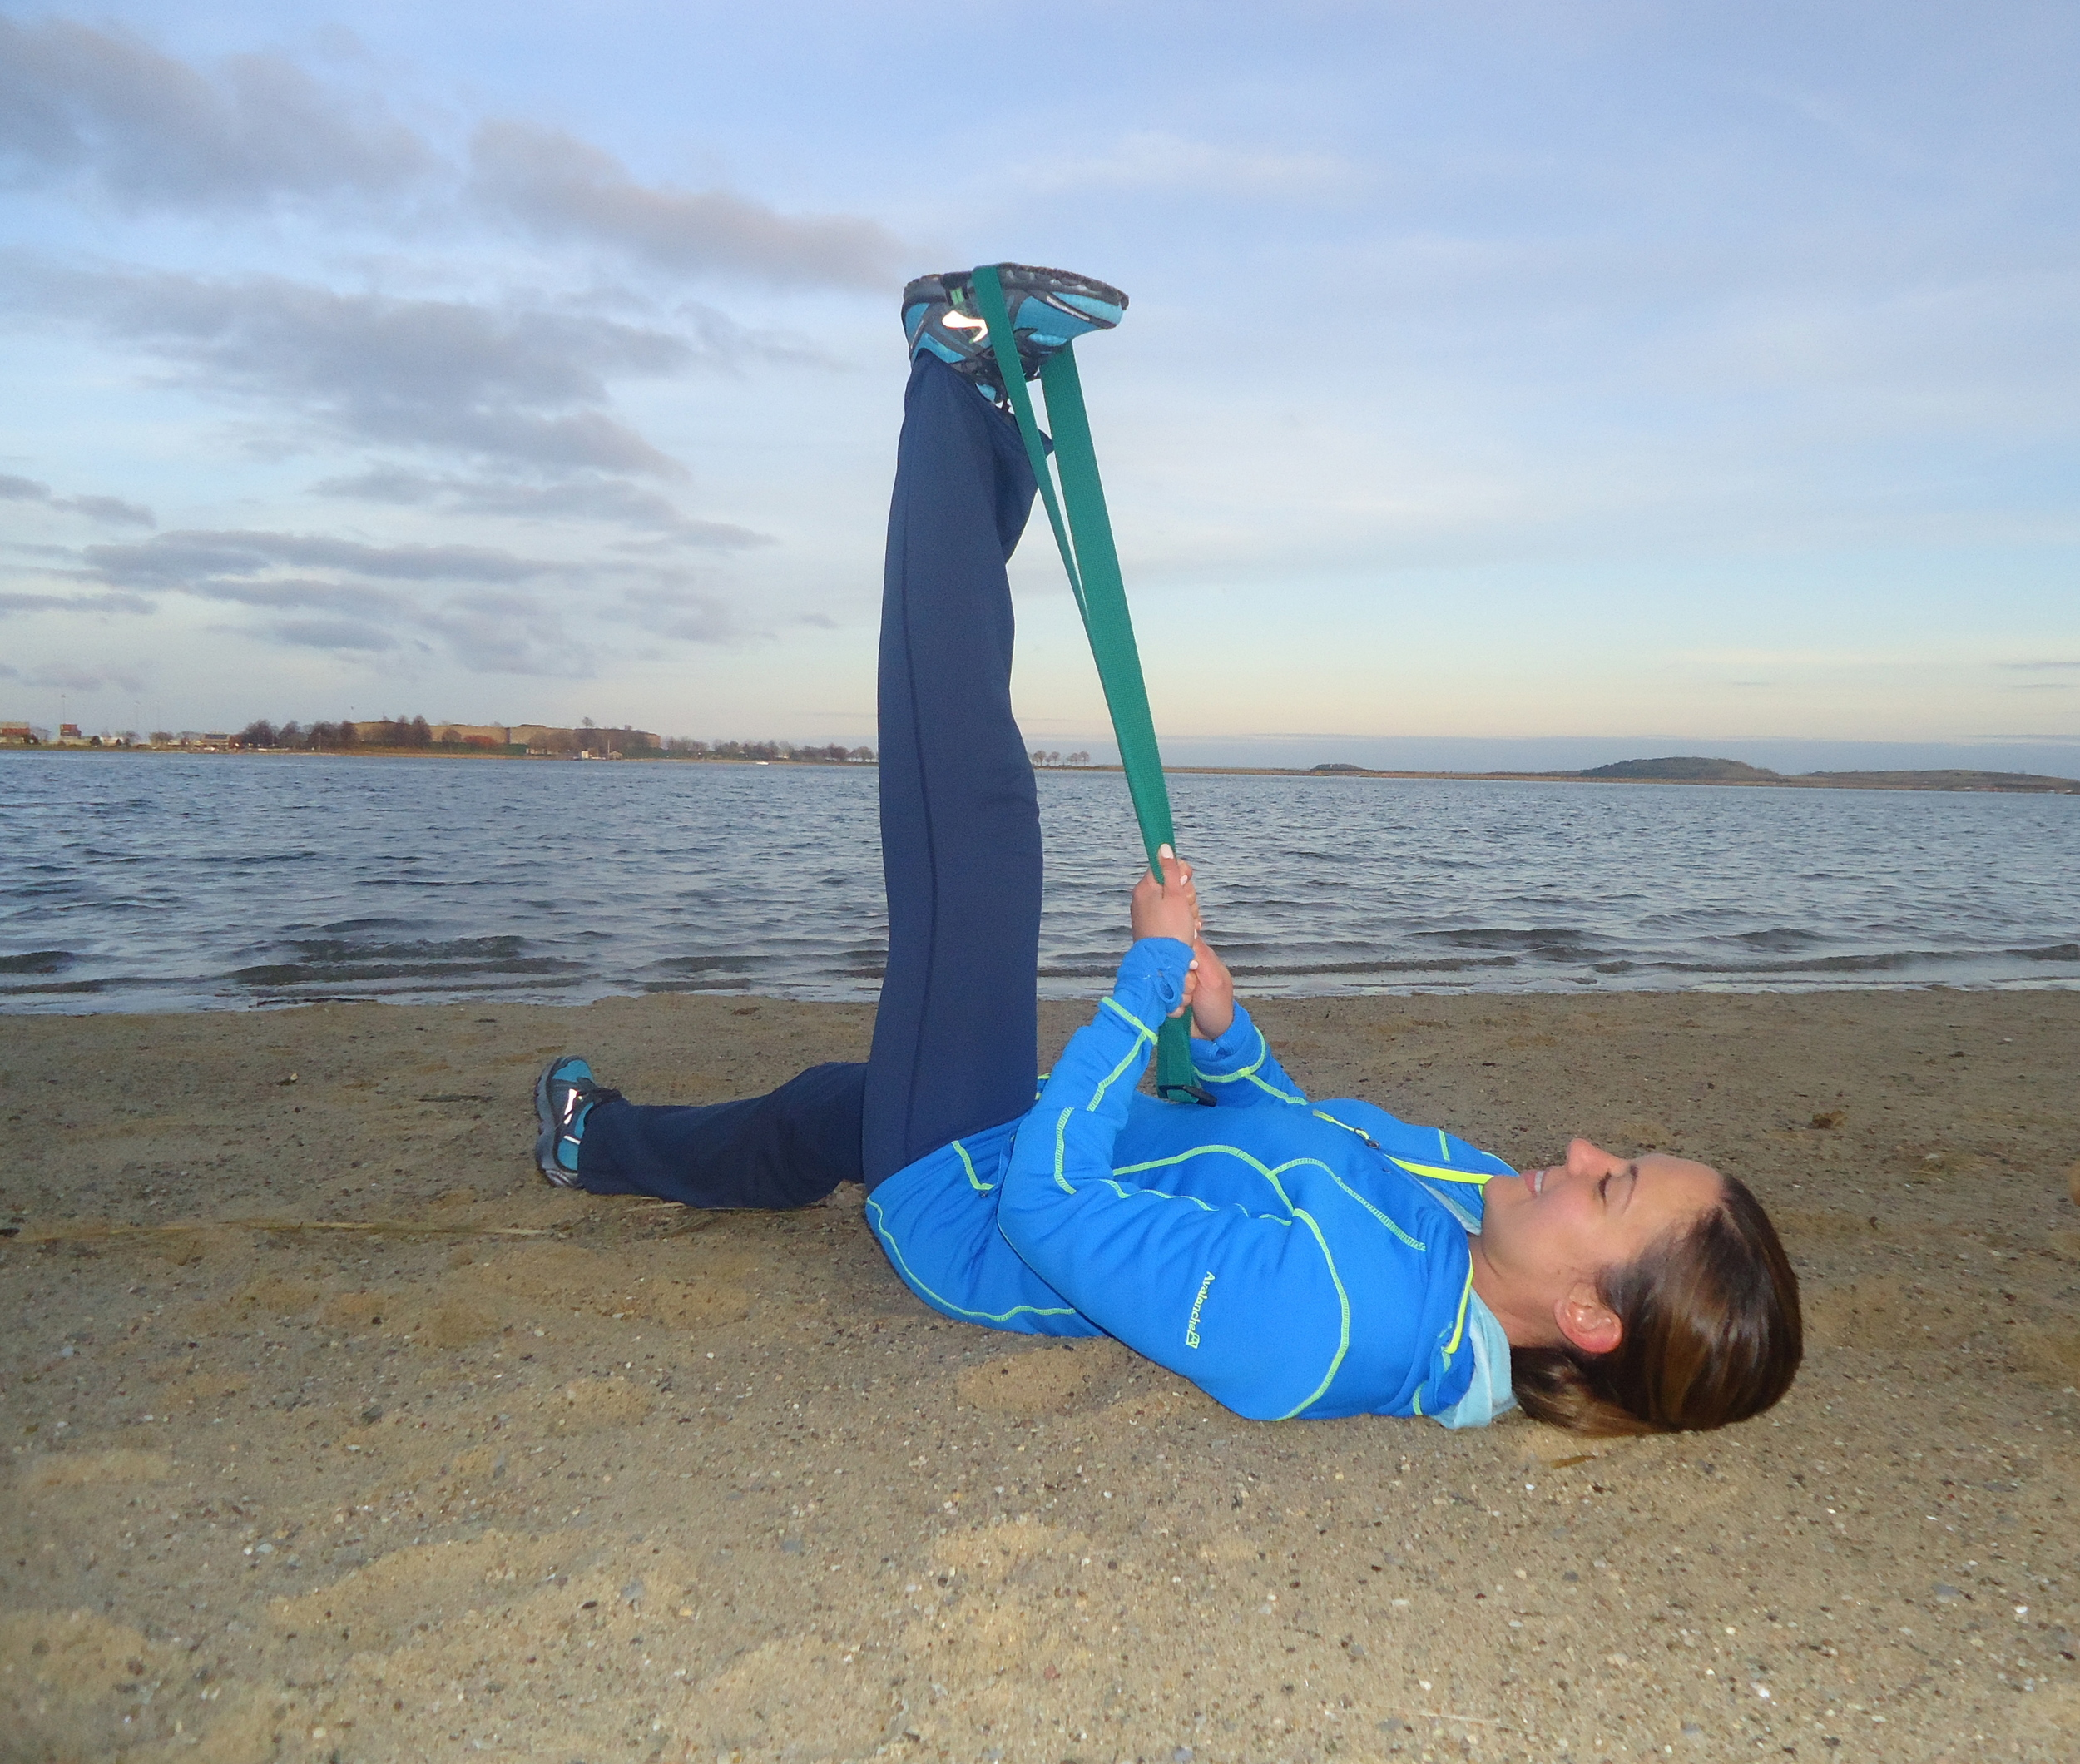 and finally...hamstring stretch with strap.